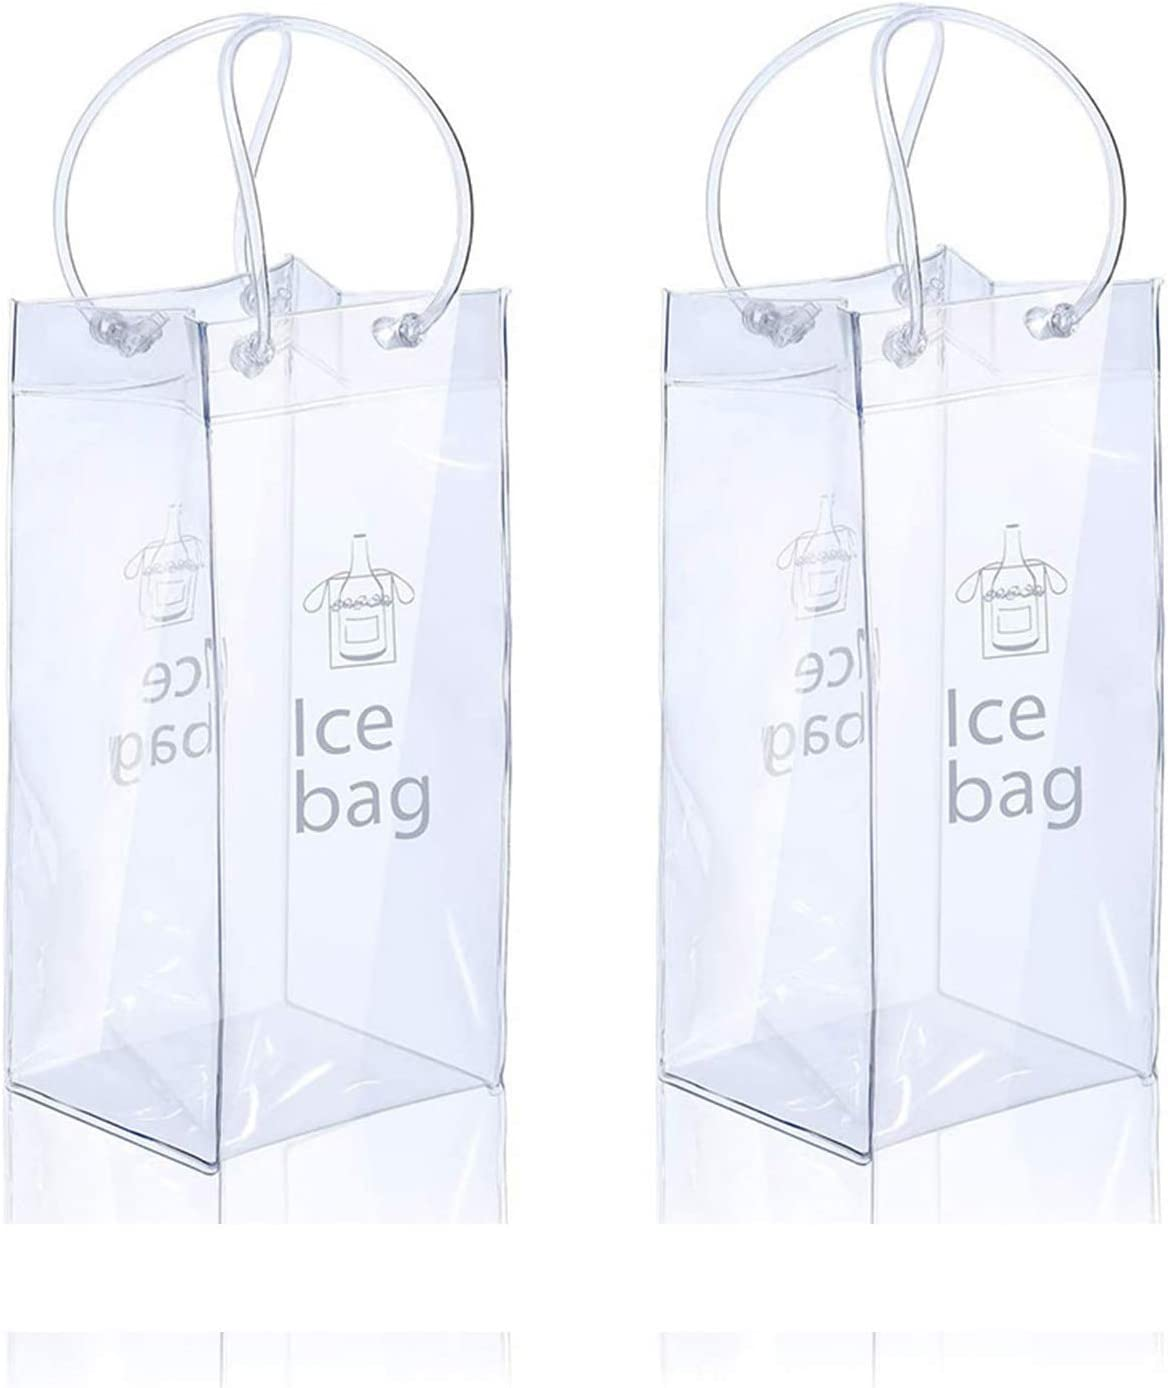 2 Pack Ice Wine Bag Portable Collapsible Clear Wine Pouch Cooler with Handle for Party,Outdoor,Champagne,Cold Beer,White Wine,Chilled Beverages,Iced Drinks